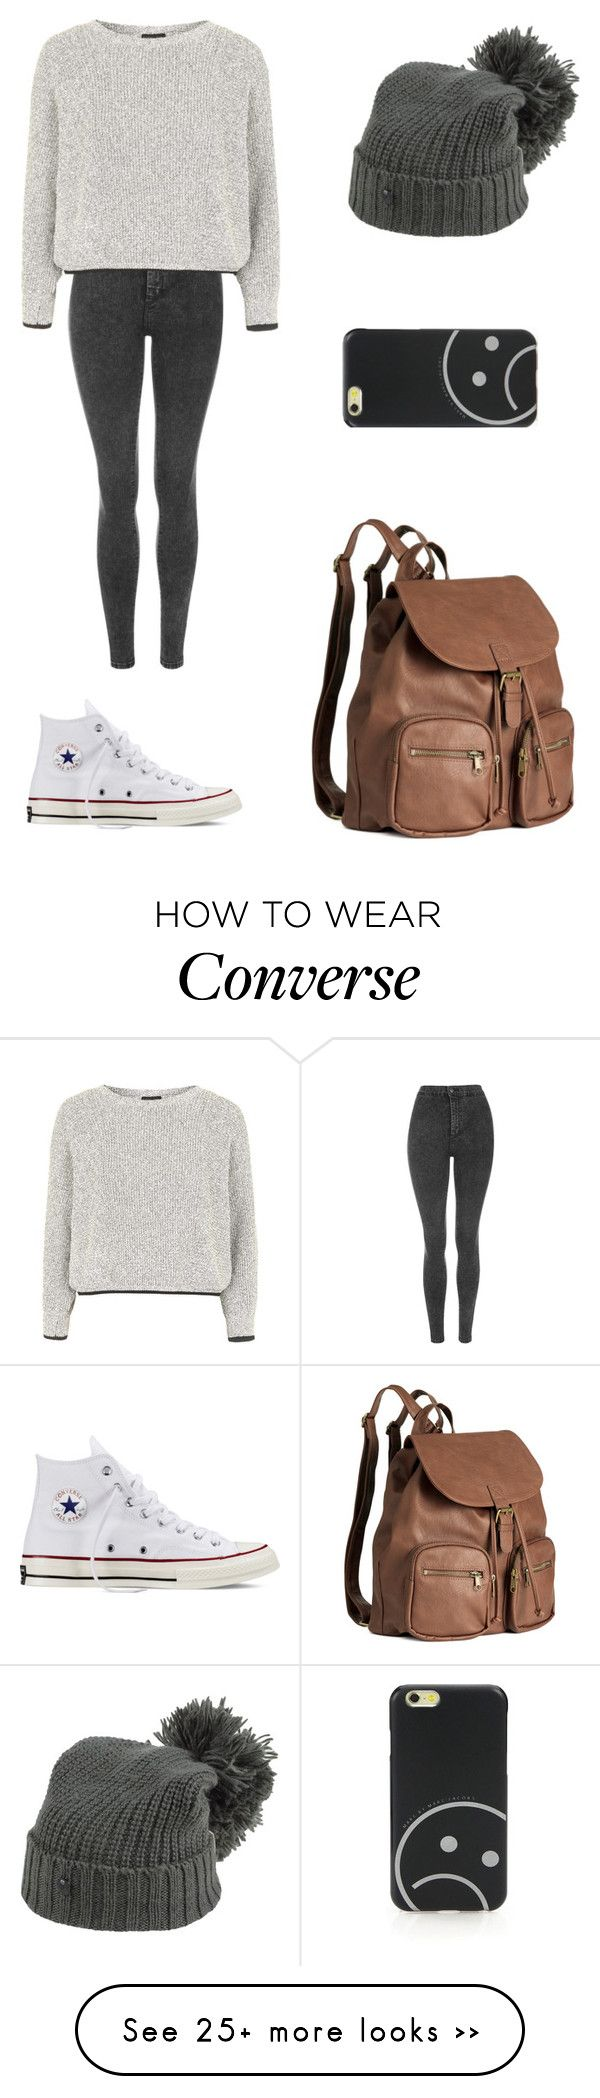 """Untitled #1807"" by ihavepashion-forfashion on Polyvore featuring Topshop, Converse, G-Star Raw, H&M and Marc by Marc Jacobs"